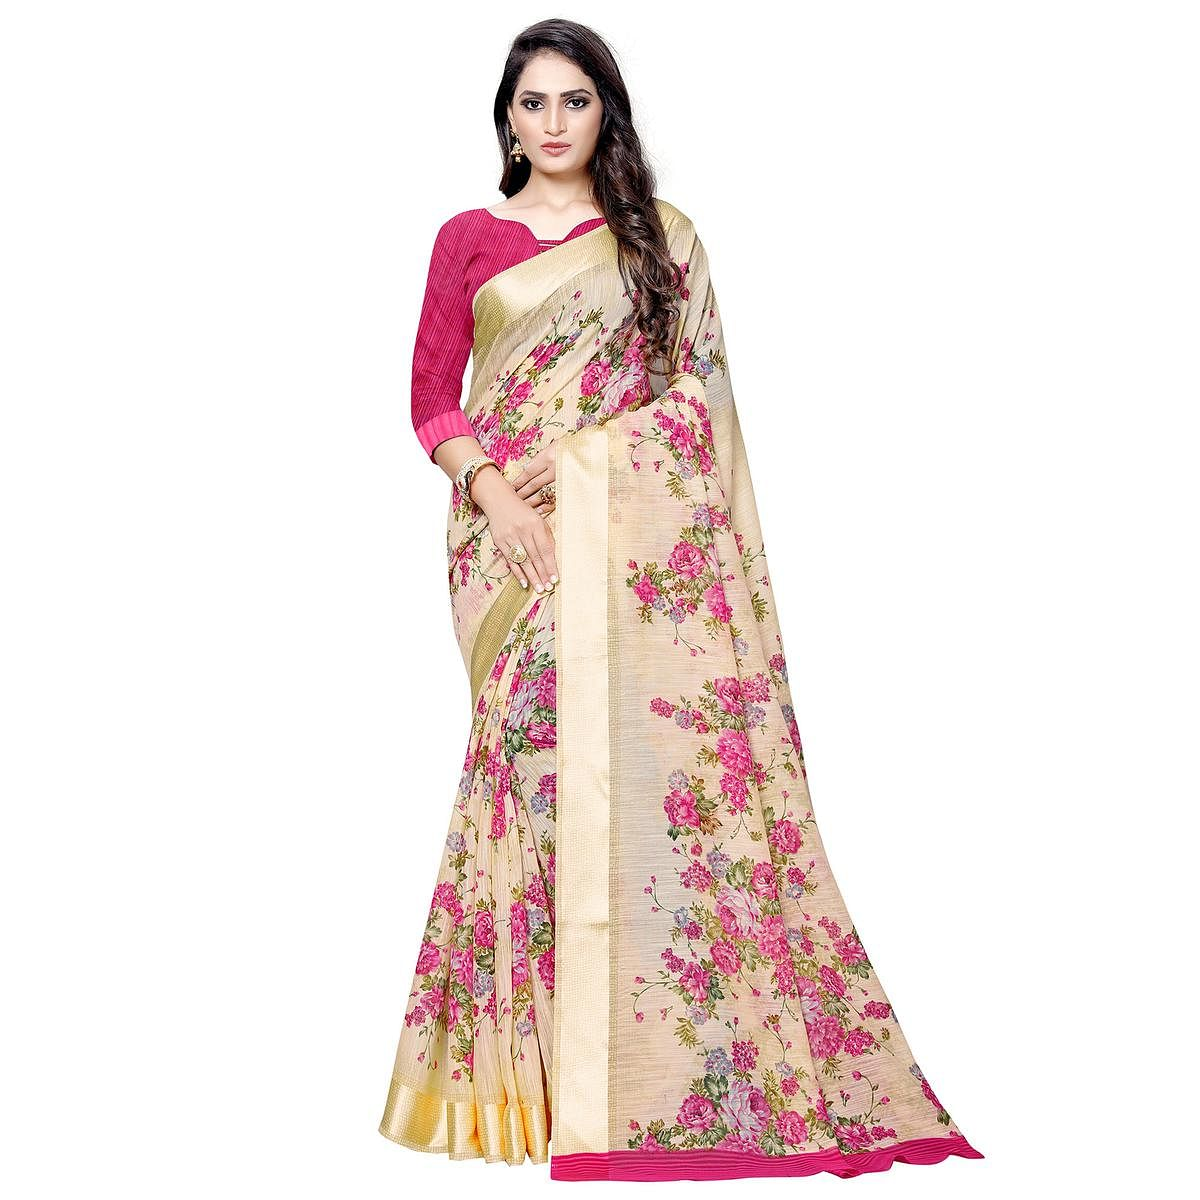 Mesmeric Peach Colored Casual Floral Printed Linen Saree